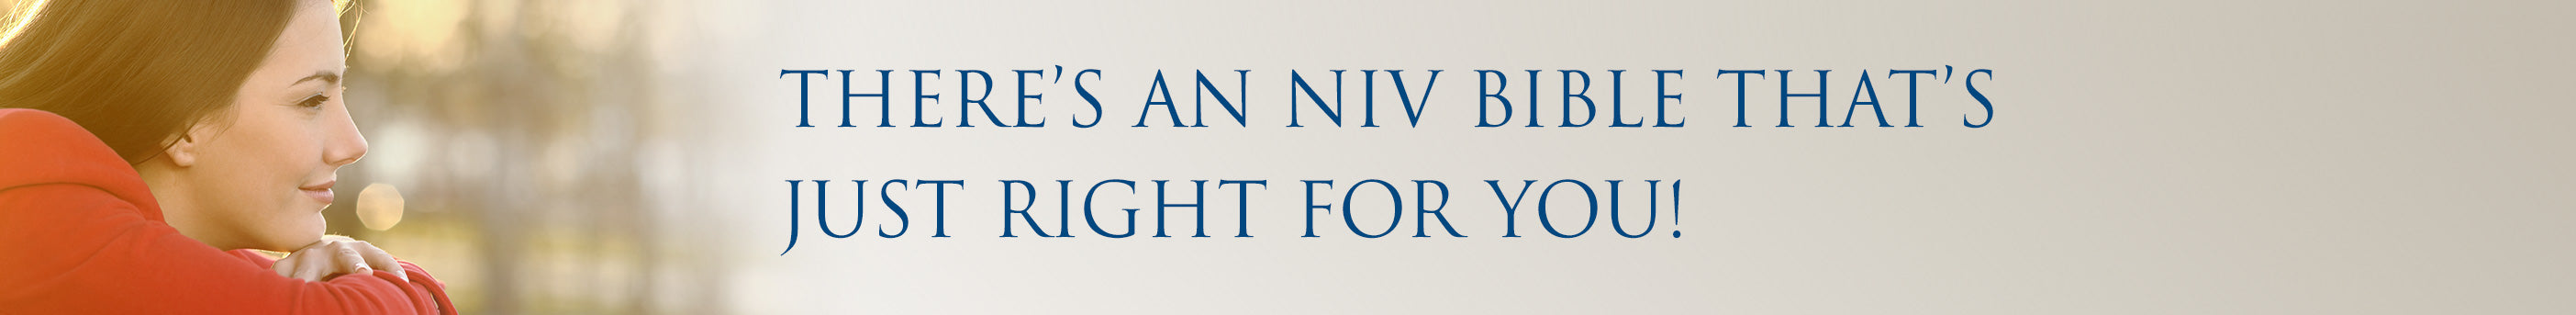 There's an NIV Bible That's Just Right for You!